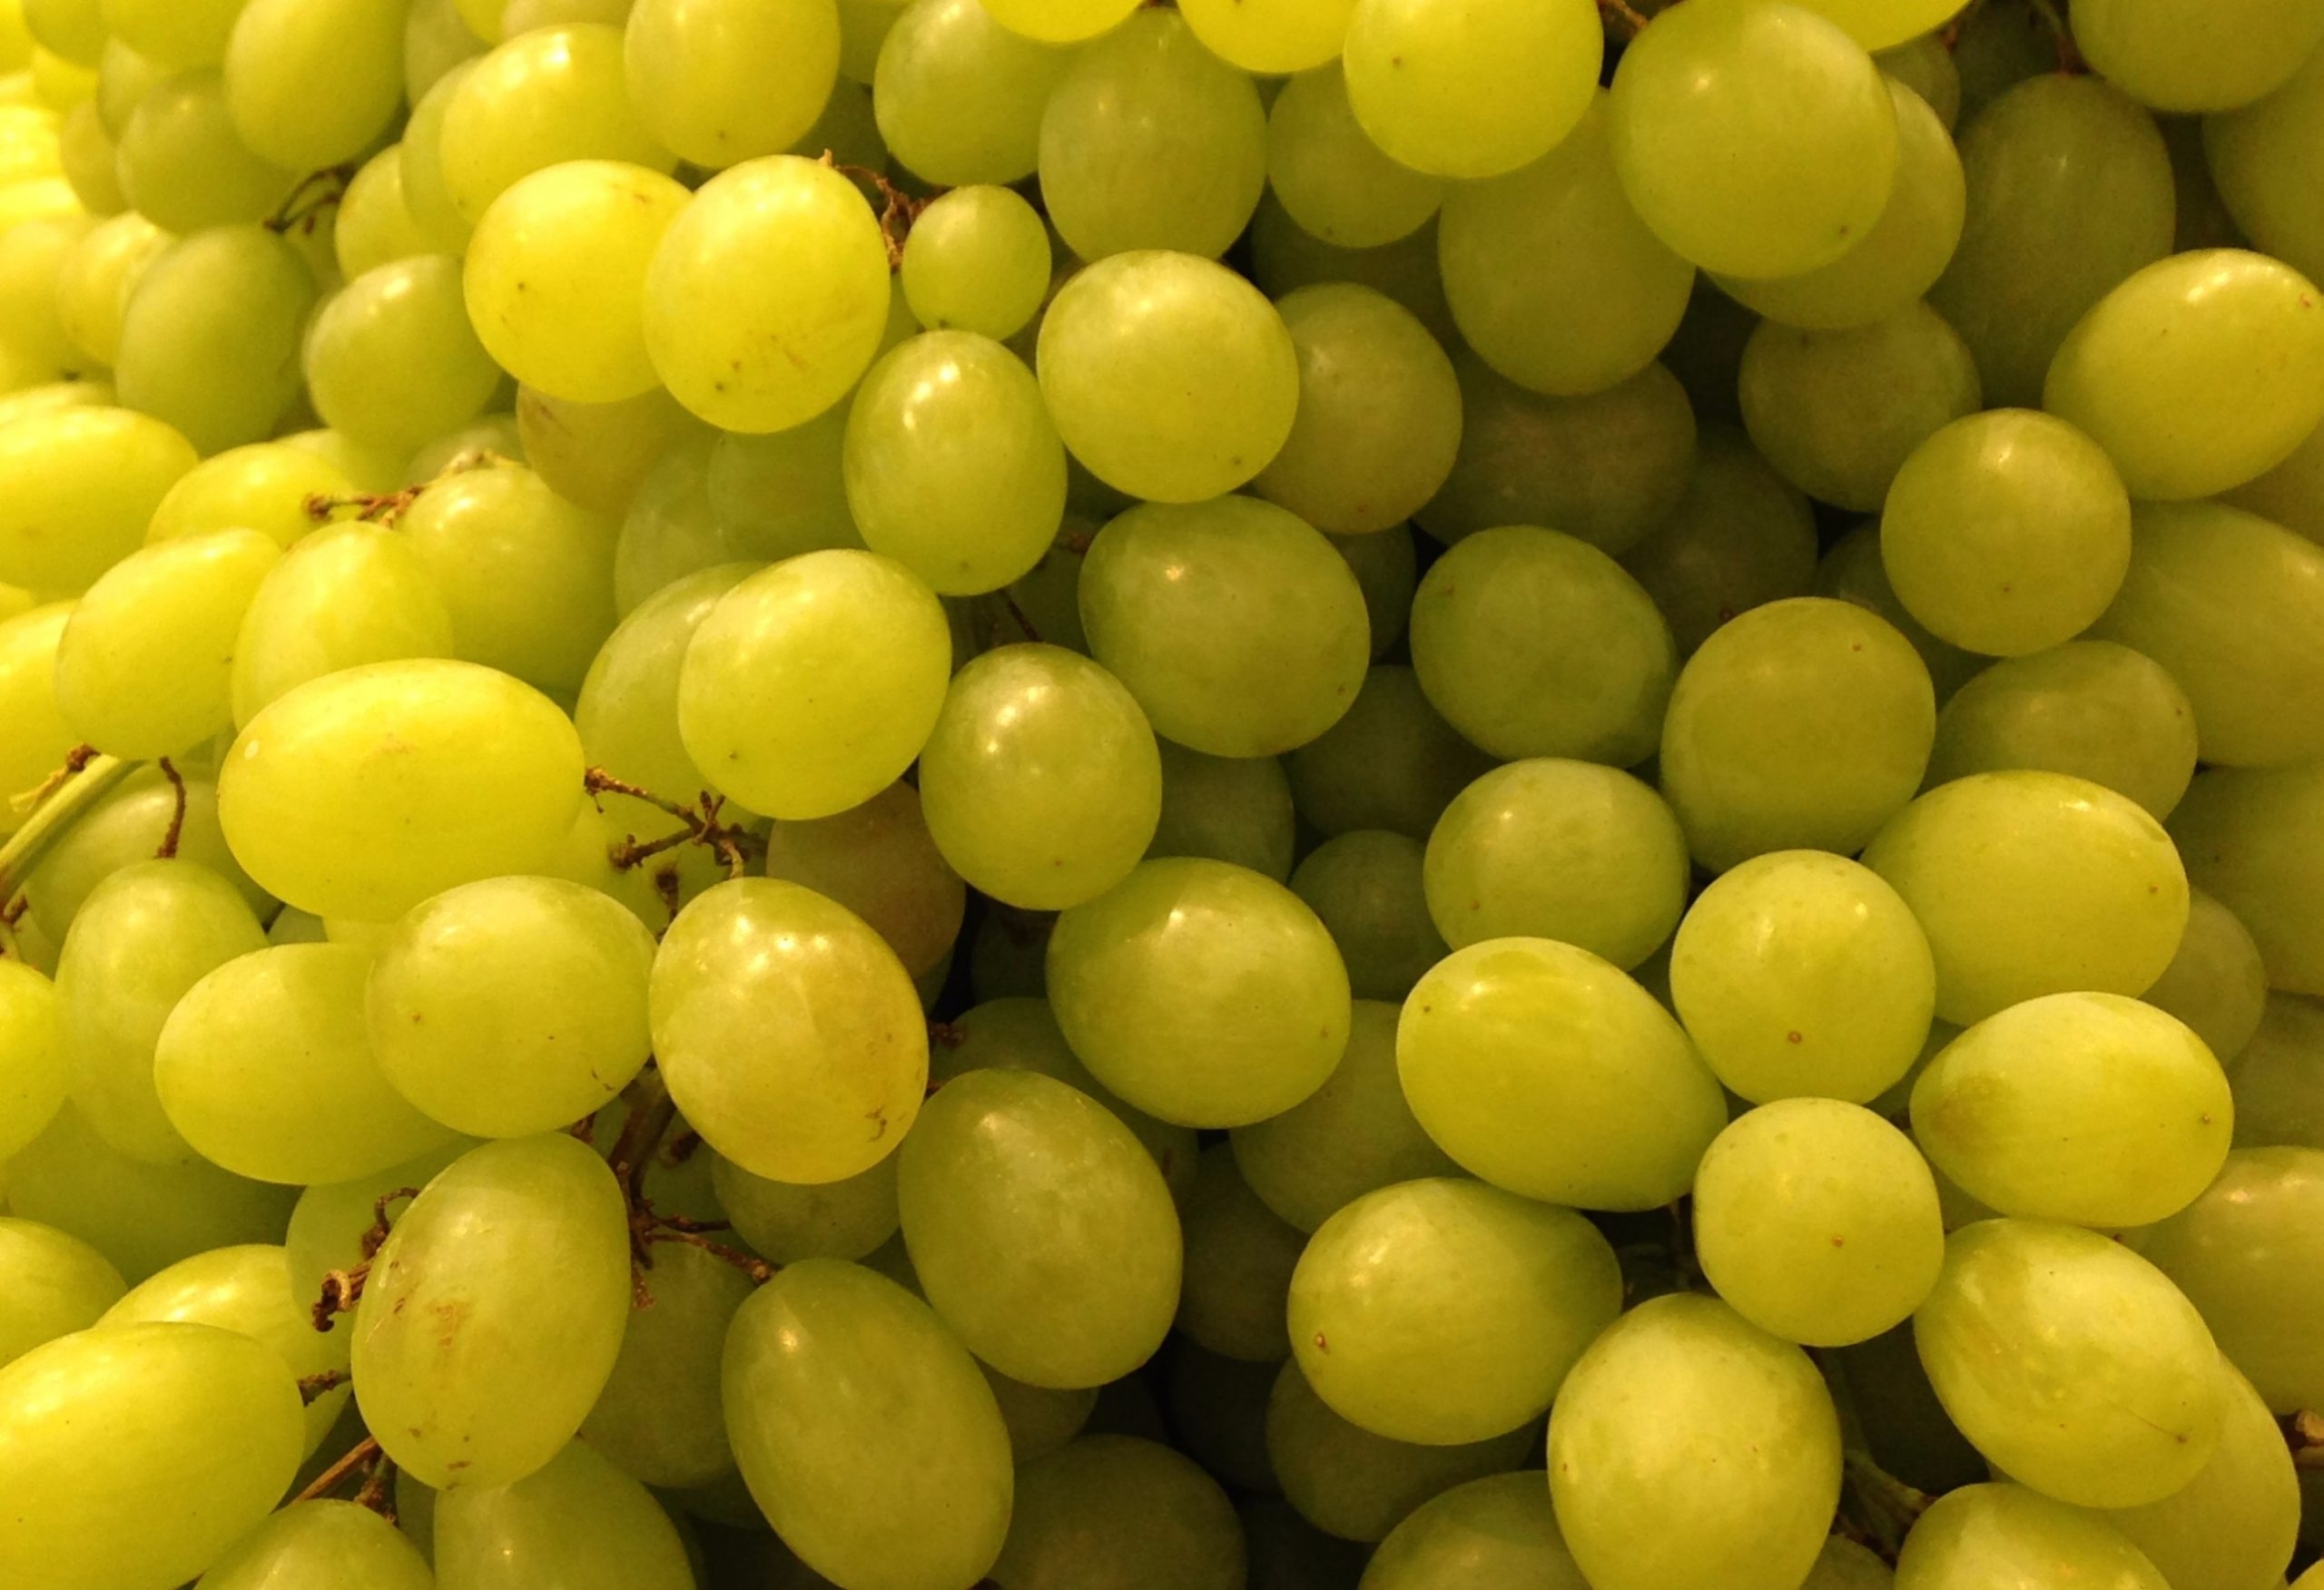 With 700 containers of table grapes exported and 600 units of other varieties, Chand Fruit is the largest fruit and vegetable exporter in India. Its products are also well-known under the 'Golden' brand.